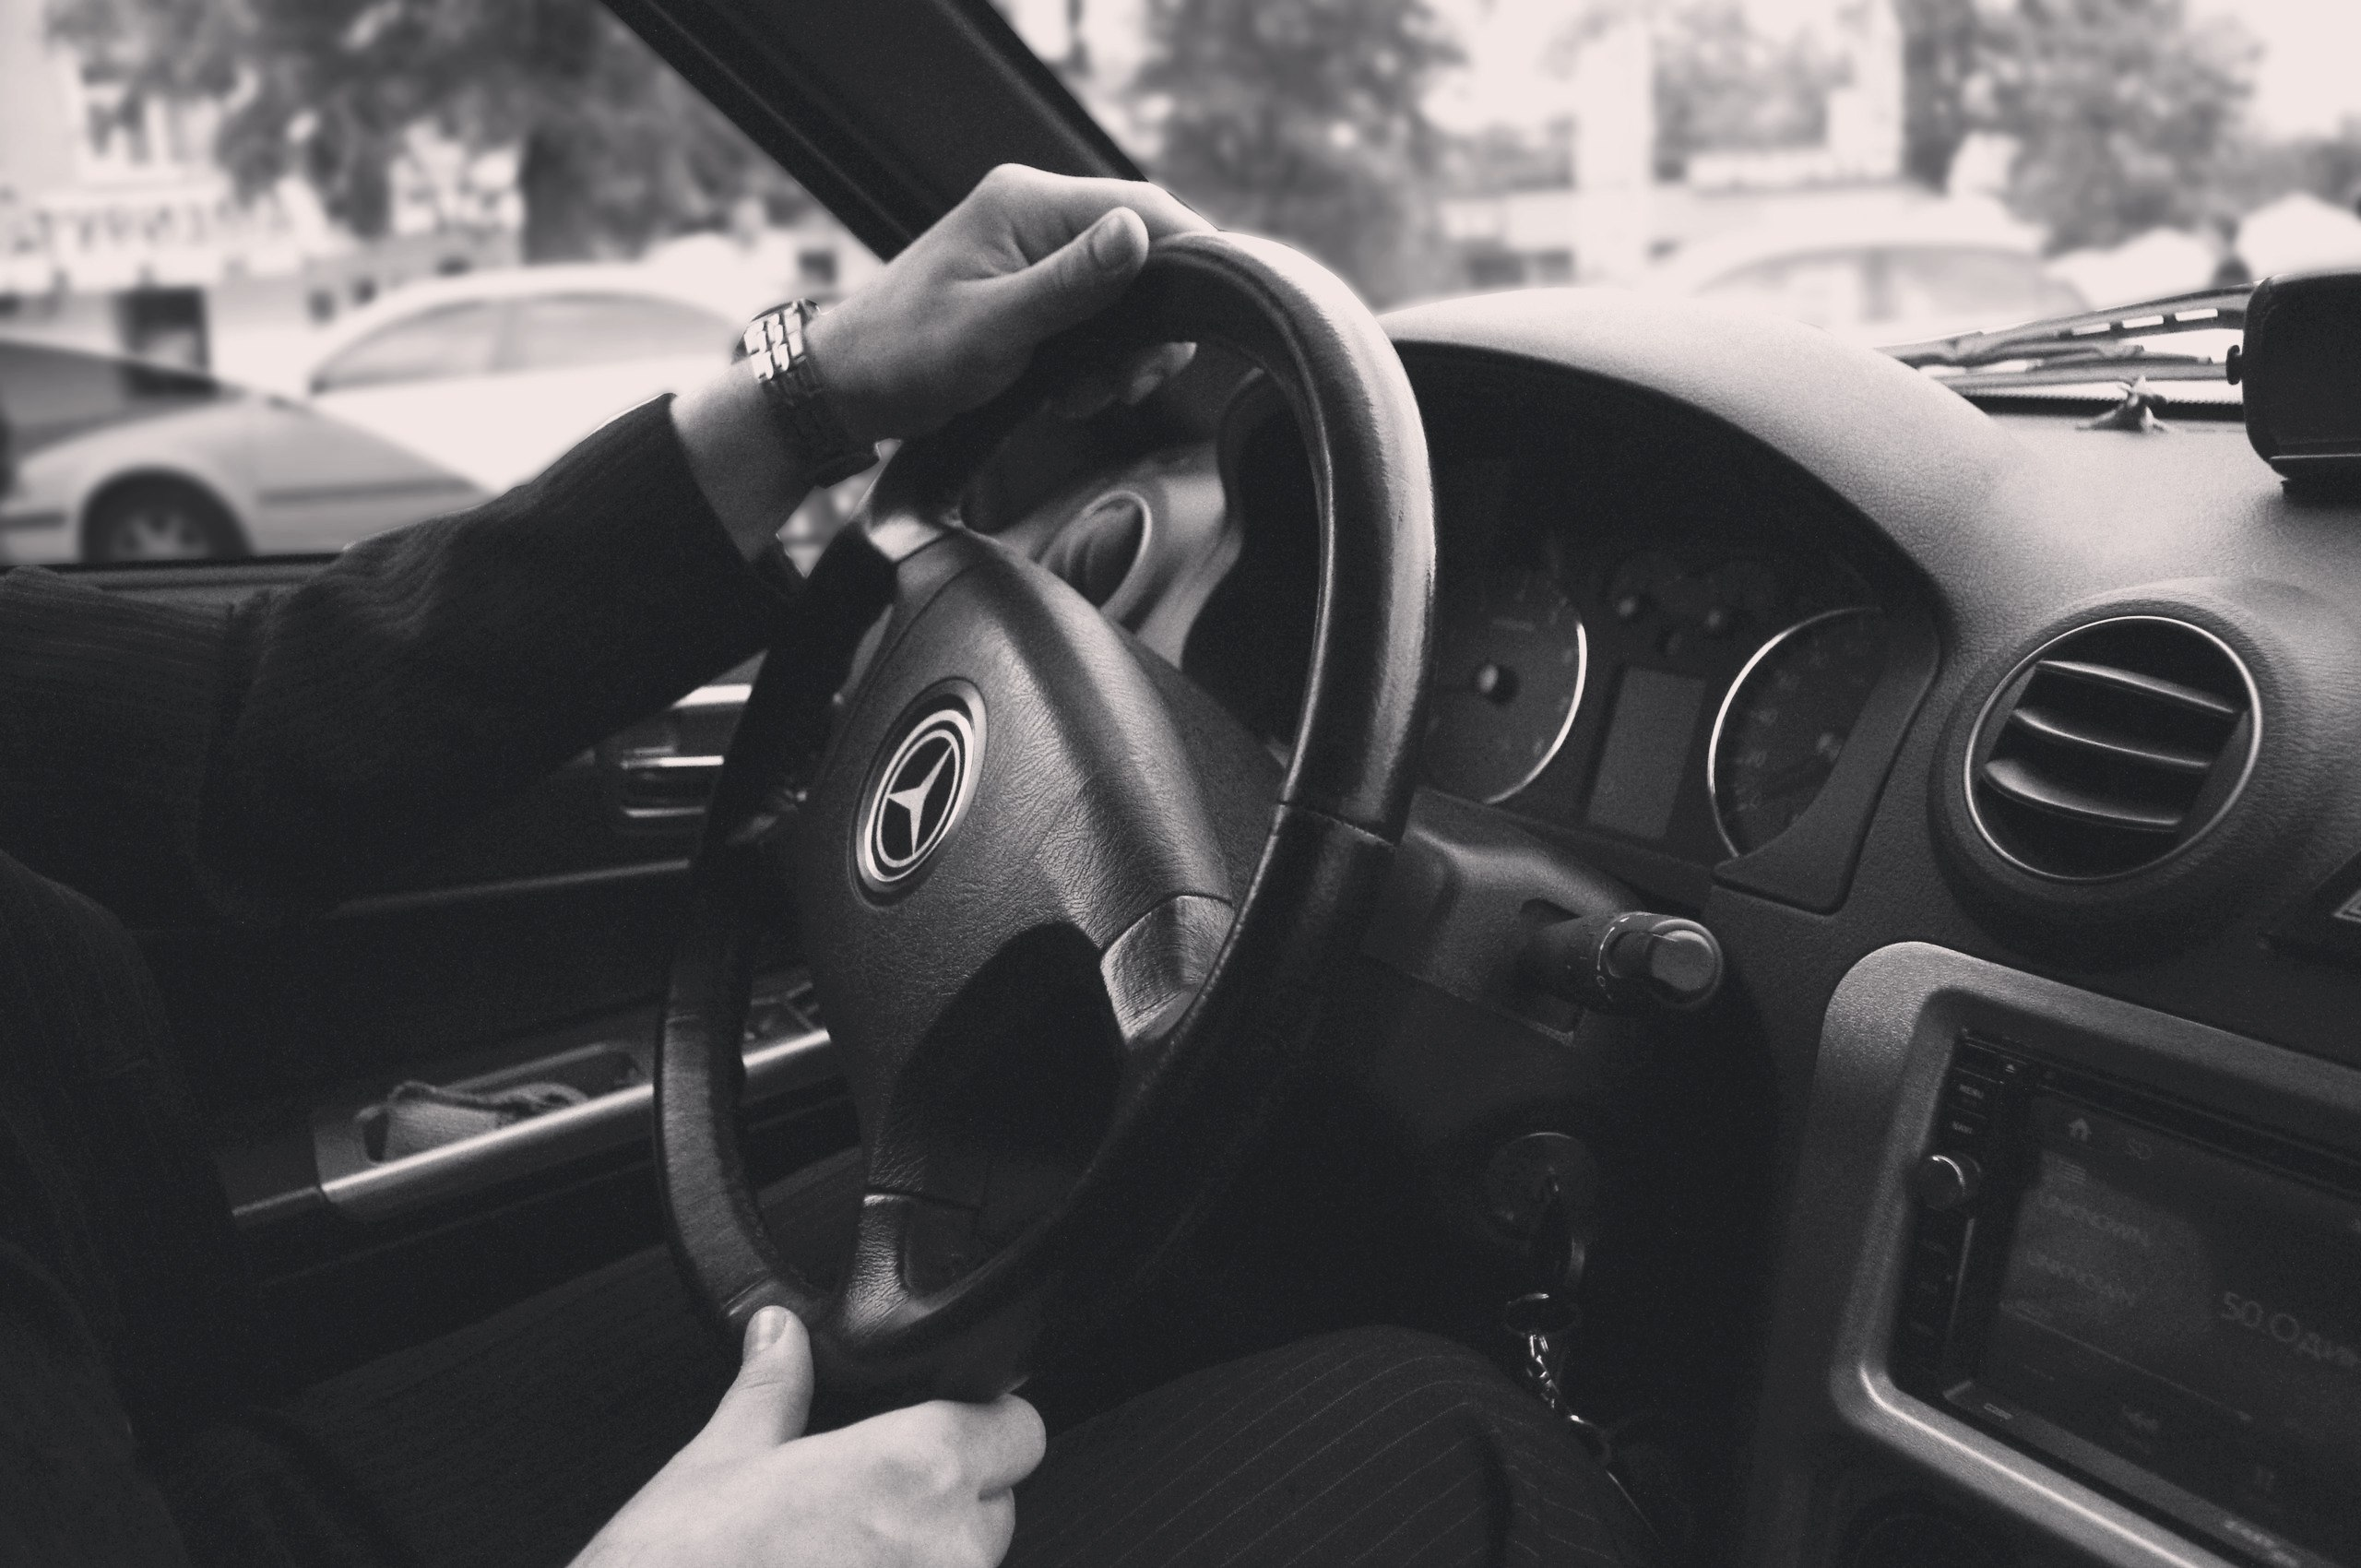 Grayscale Photography of Person Driving a Car